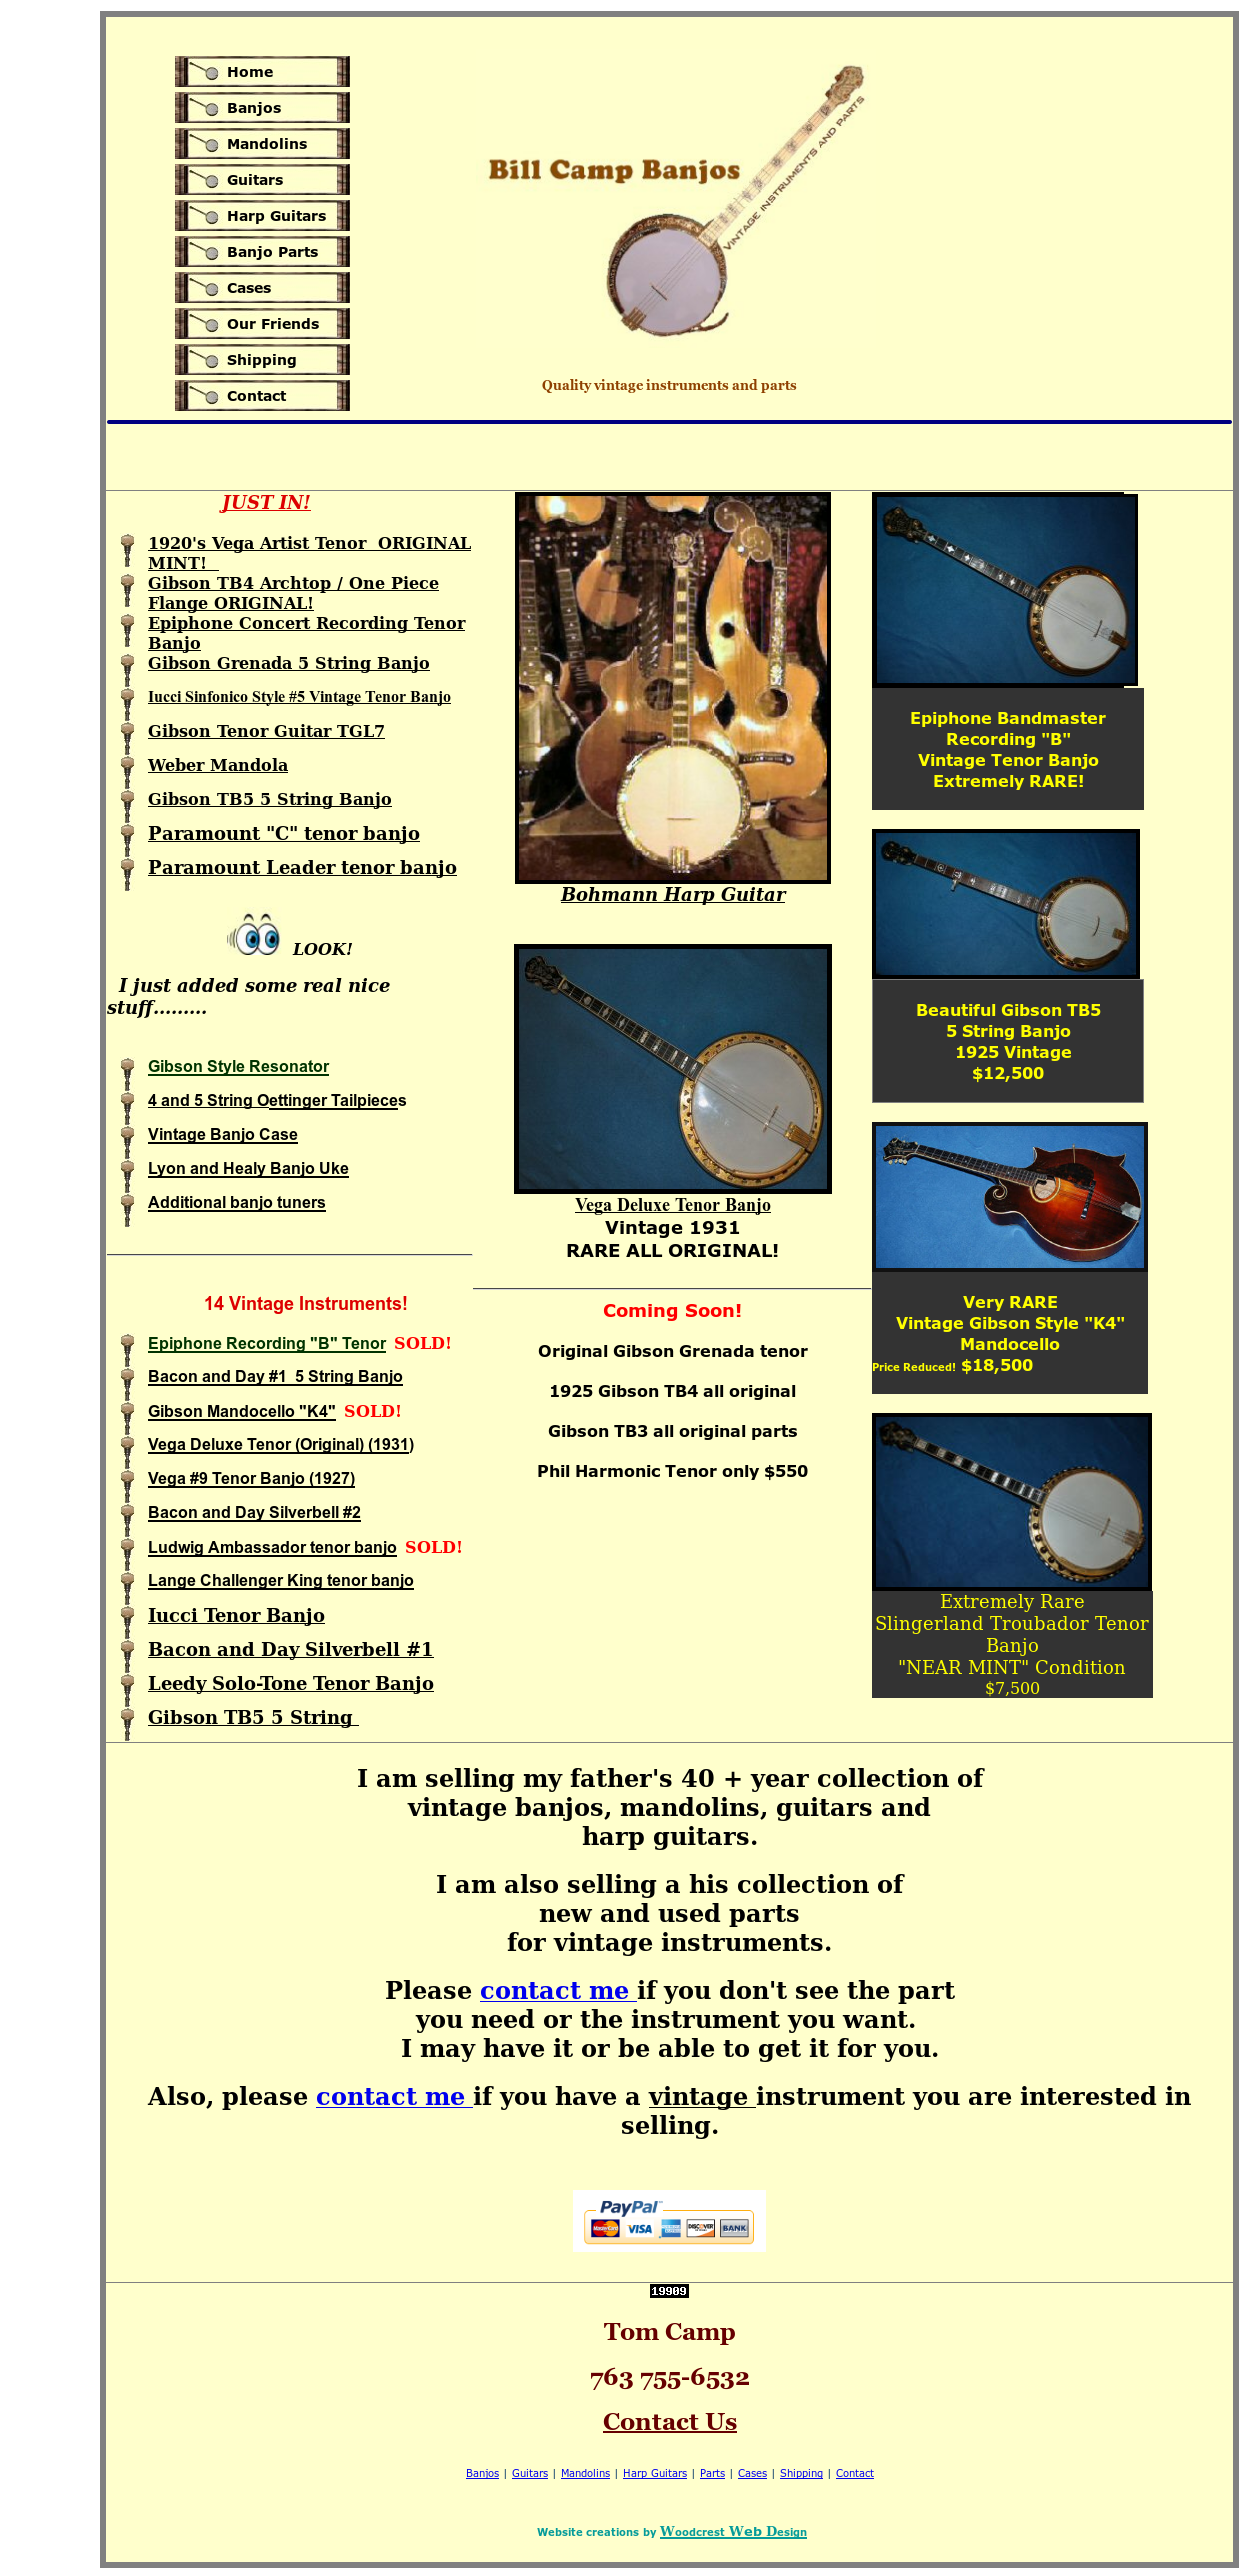 Bill Camp Banjos Competitors, Revenue and Employees - Owler Company